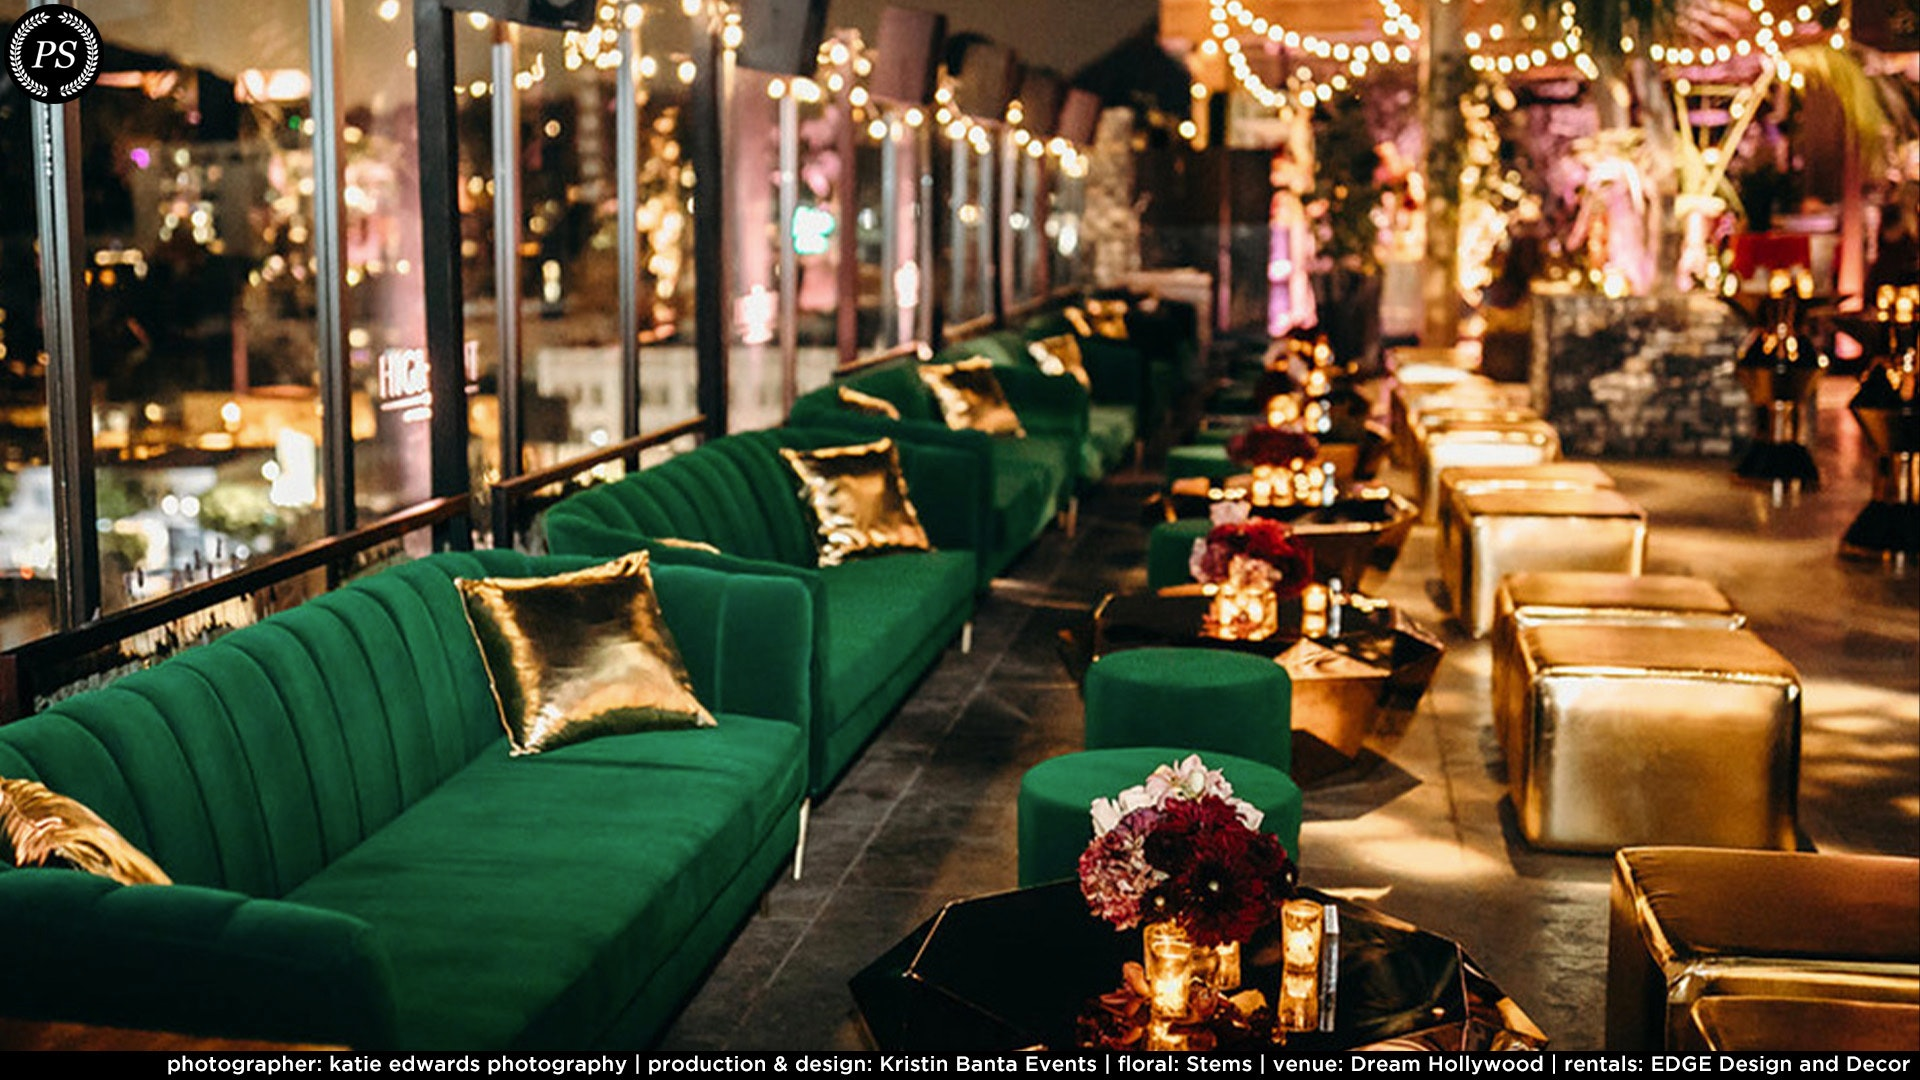 A row of green velvet couches along a mirror reflecting gold accents and tables